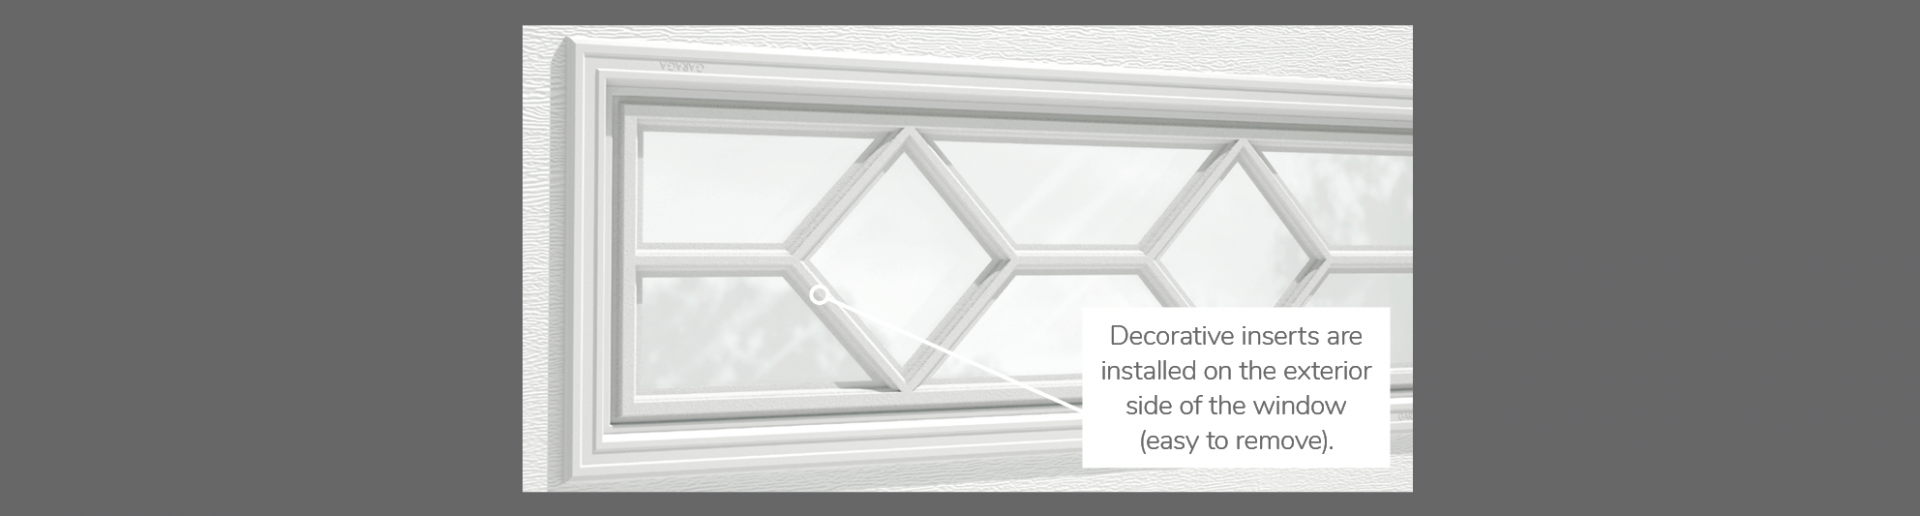 "Waterton Decorative Insert, 40"" x 13"", 21"" x 13"", 41"" x 16"" or 20"" x 13"", available for door R-16"